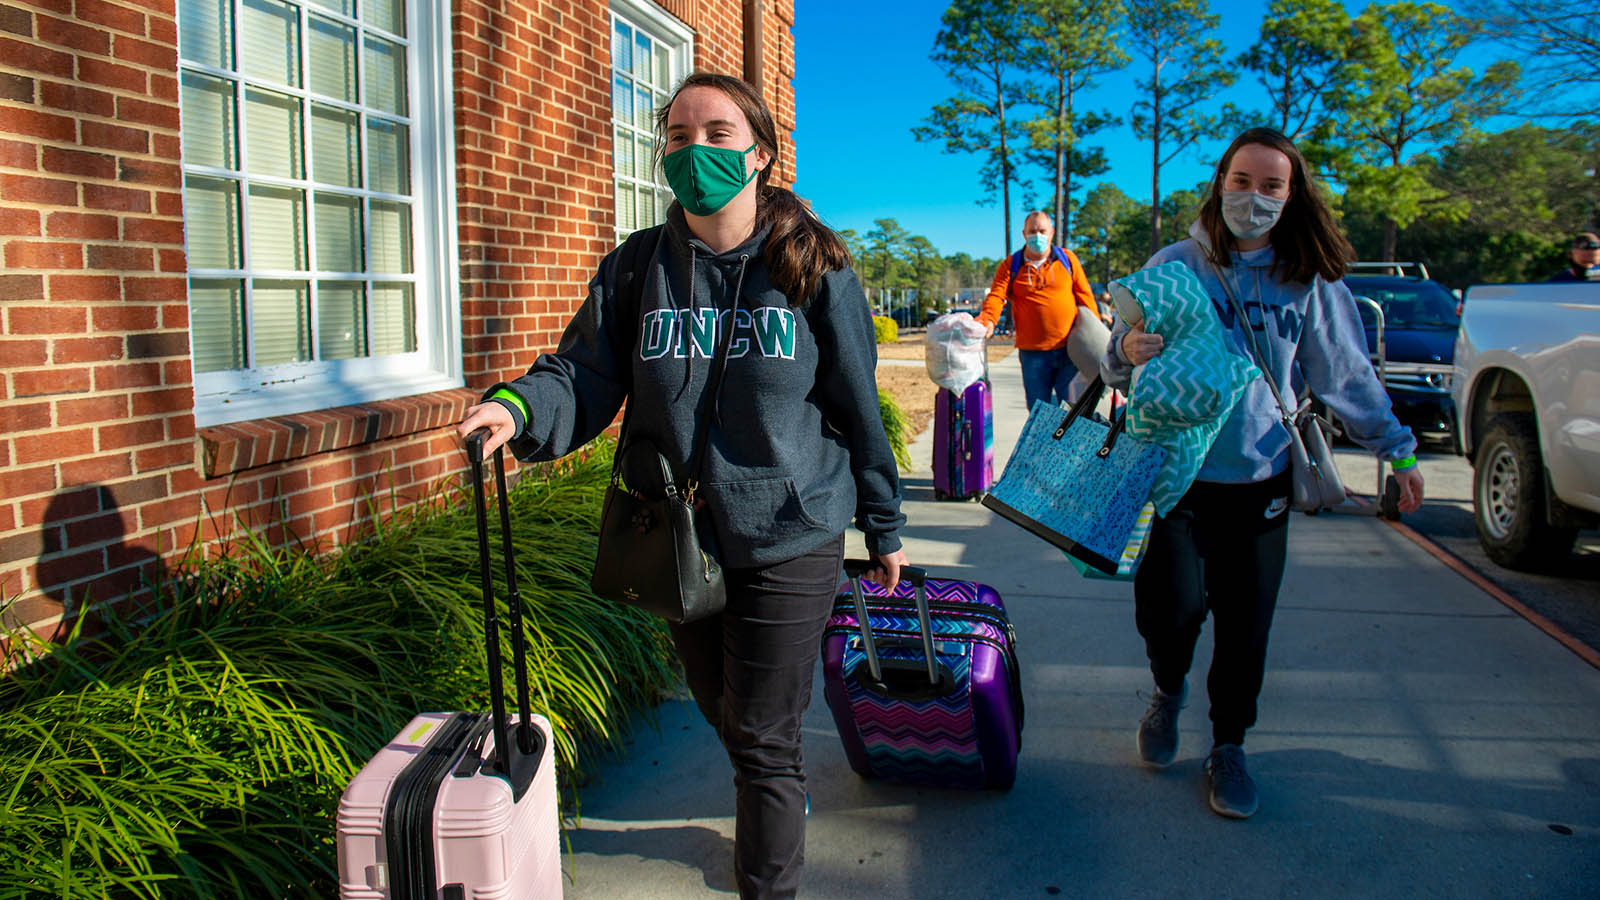 Bringing bags and rolling suitcases, twin sisters Molly (left) and Jenny (right) Norris walk with their luggage to their residence hall. A man follows carrying bags and bedding.